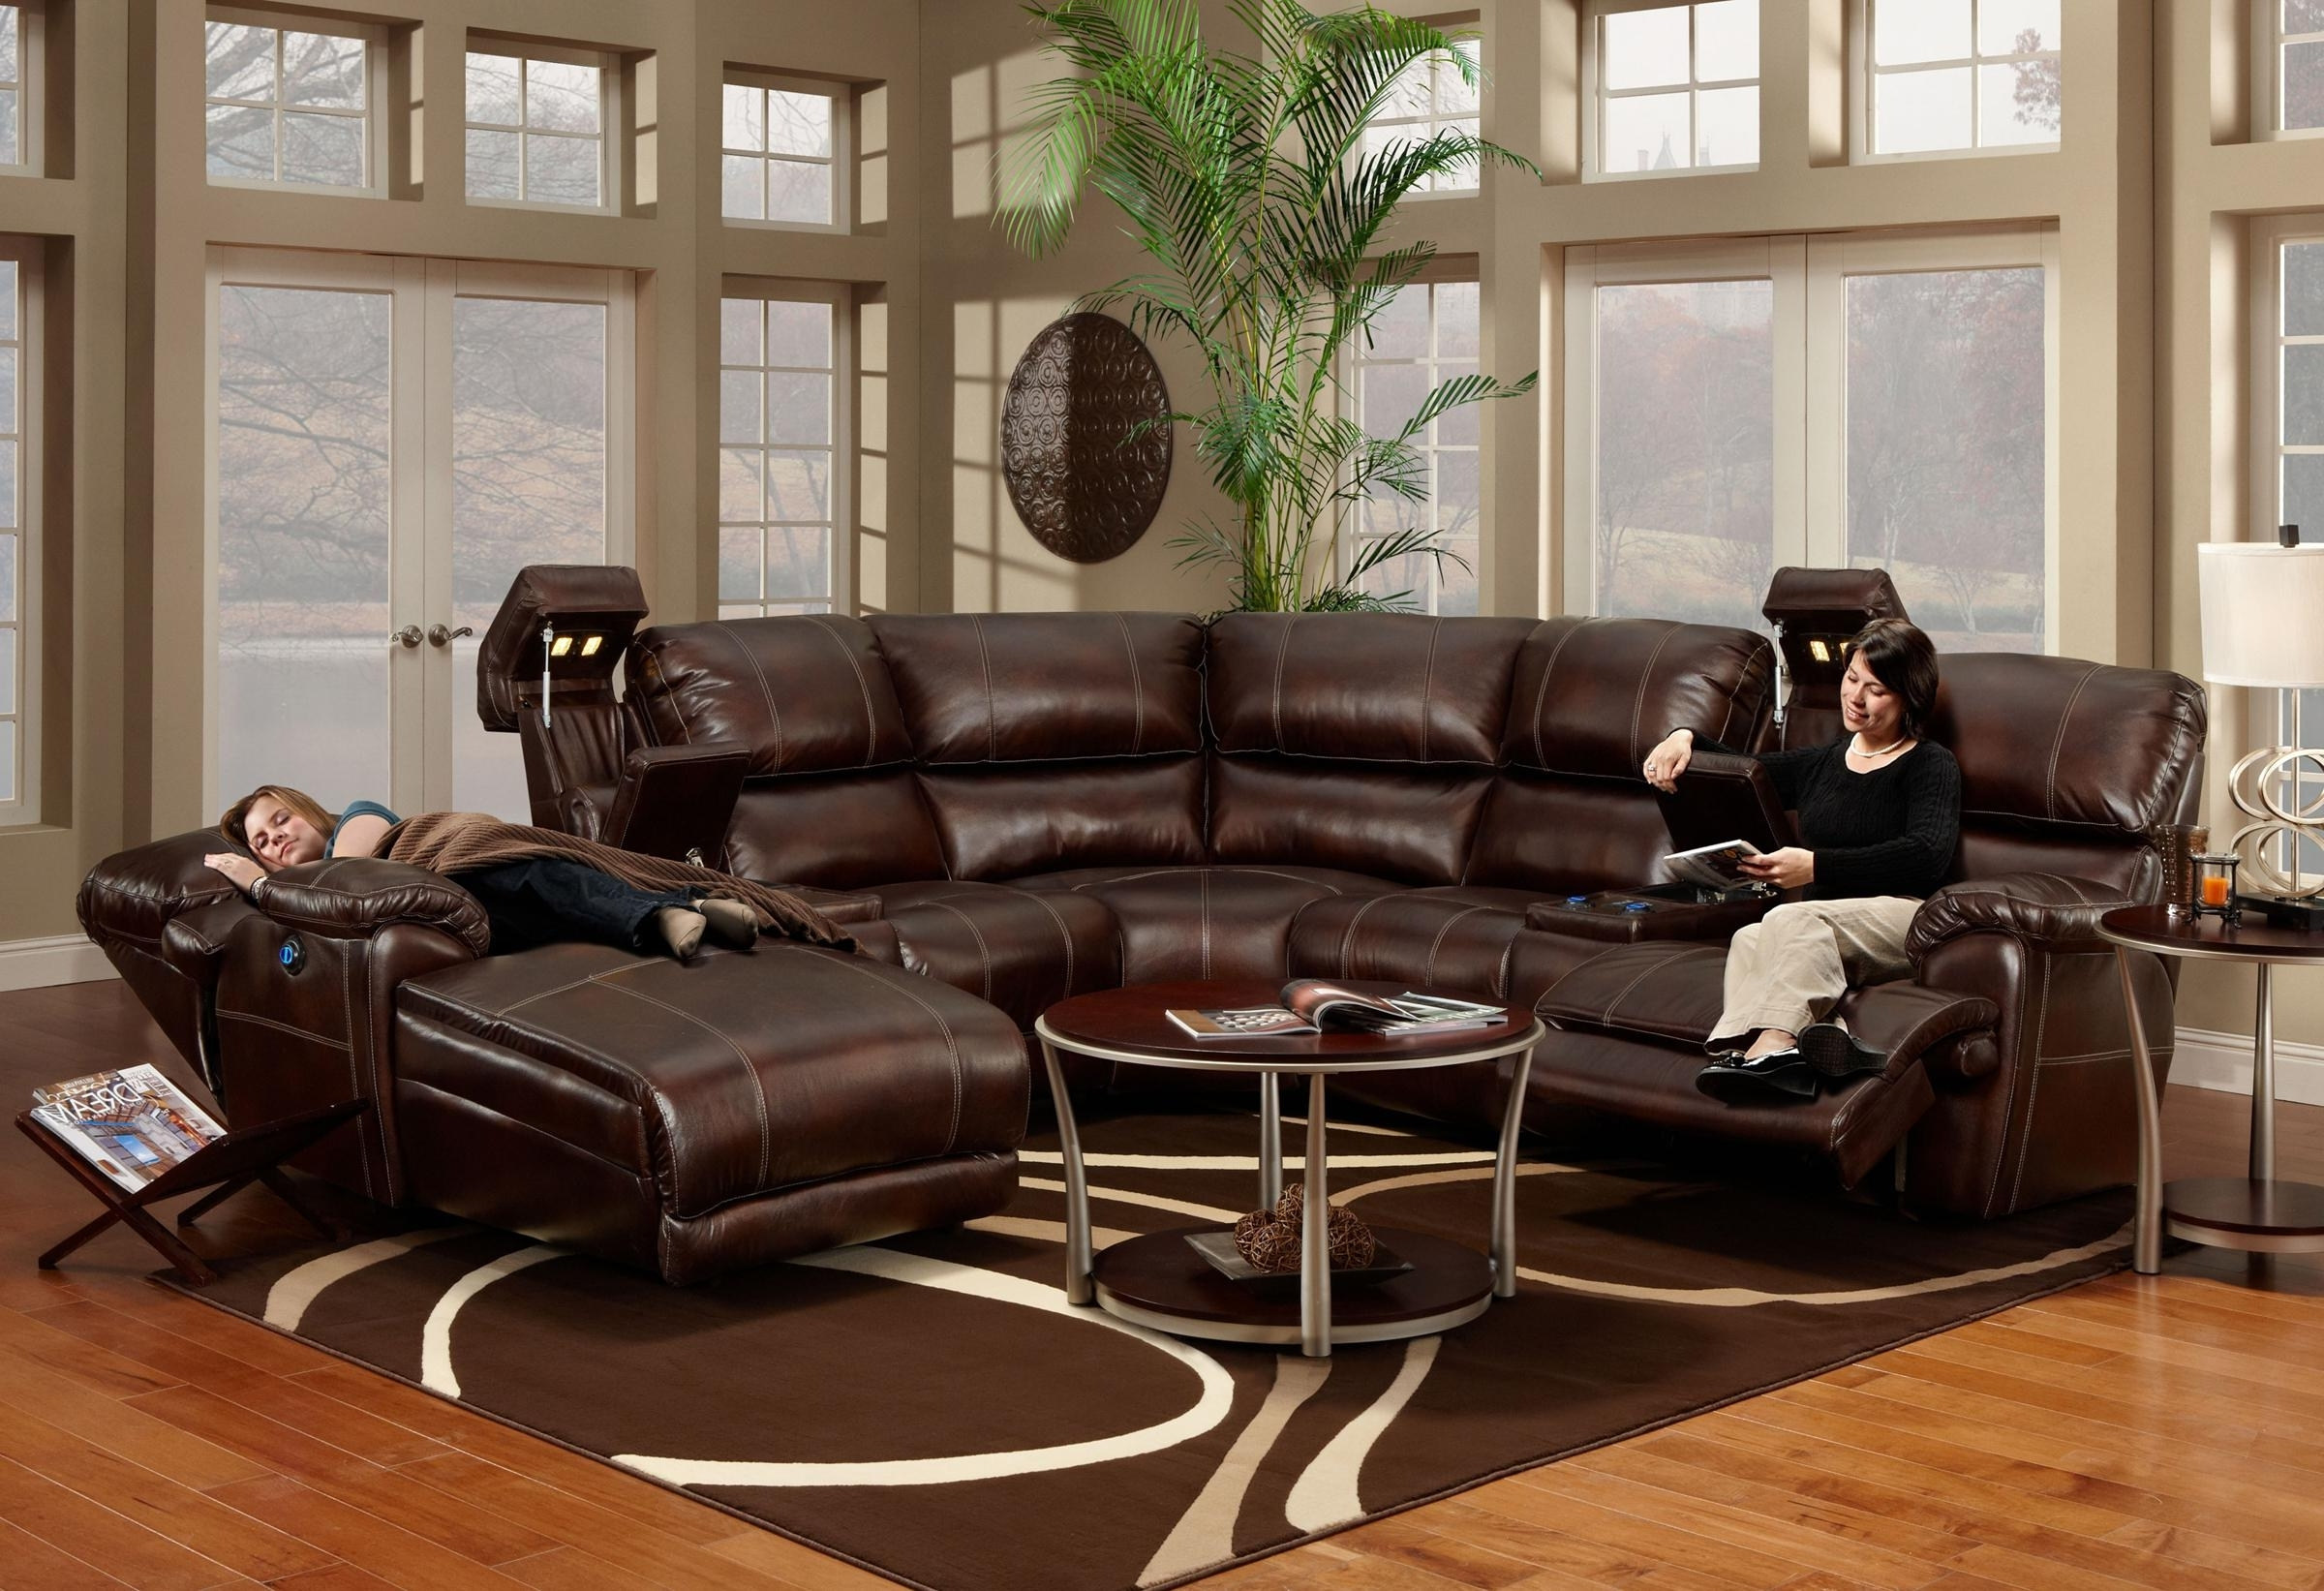 Recent Kansas City Sectional Sofas Intended For Franklin 572 Reclining Sectional Sofa With Chaise – Ahfa – Sofa (View 15 of 20)